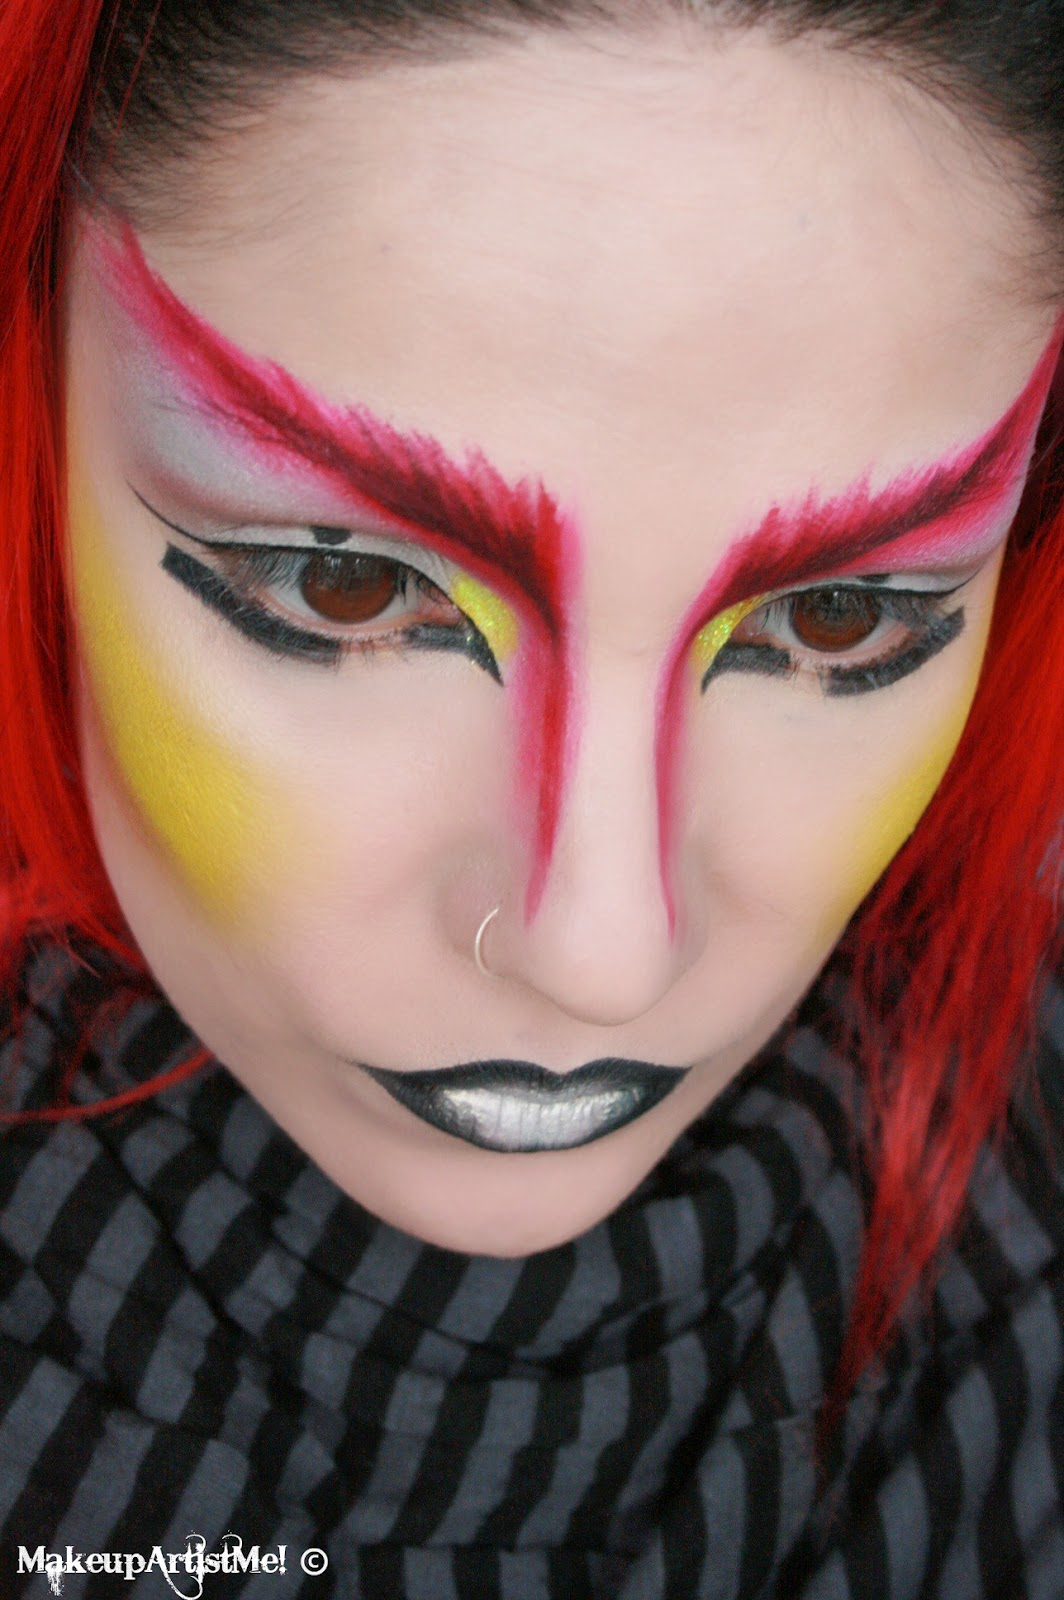 Make Up Lesson For Beginners: Make-up Artist Me!: Warrior -- An Artistic Makeup Look